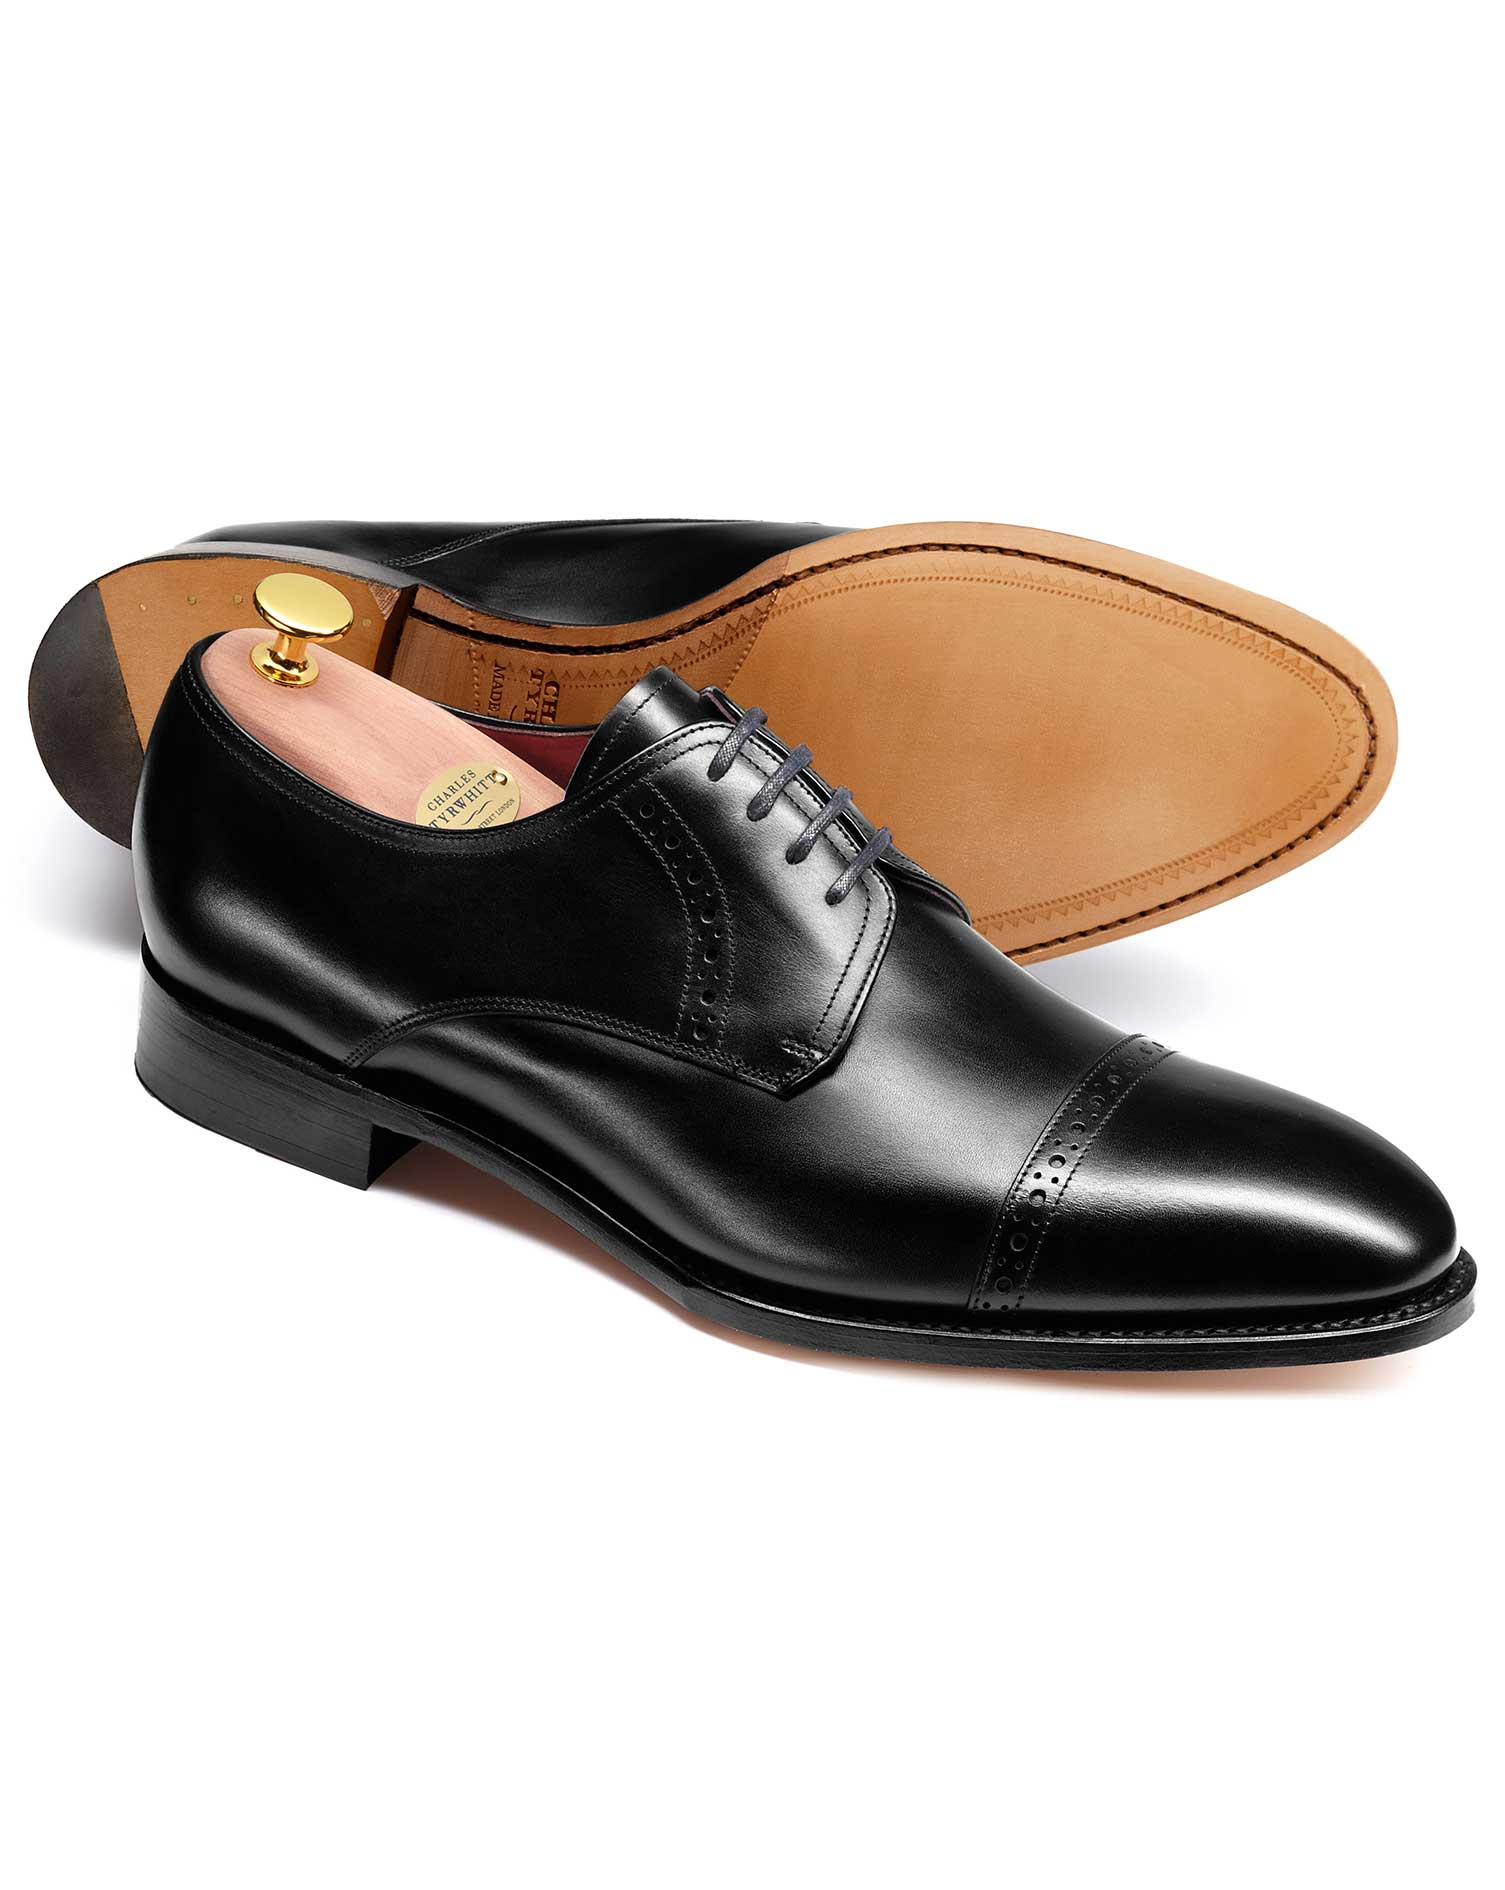 Black Hallworthy Calf Leather Toe Cap Brogue Derby Shoes Size 7 W by Charles Tyrwhitt